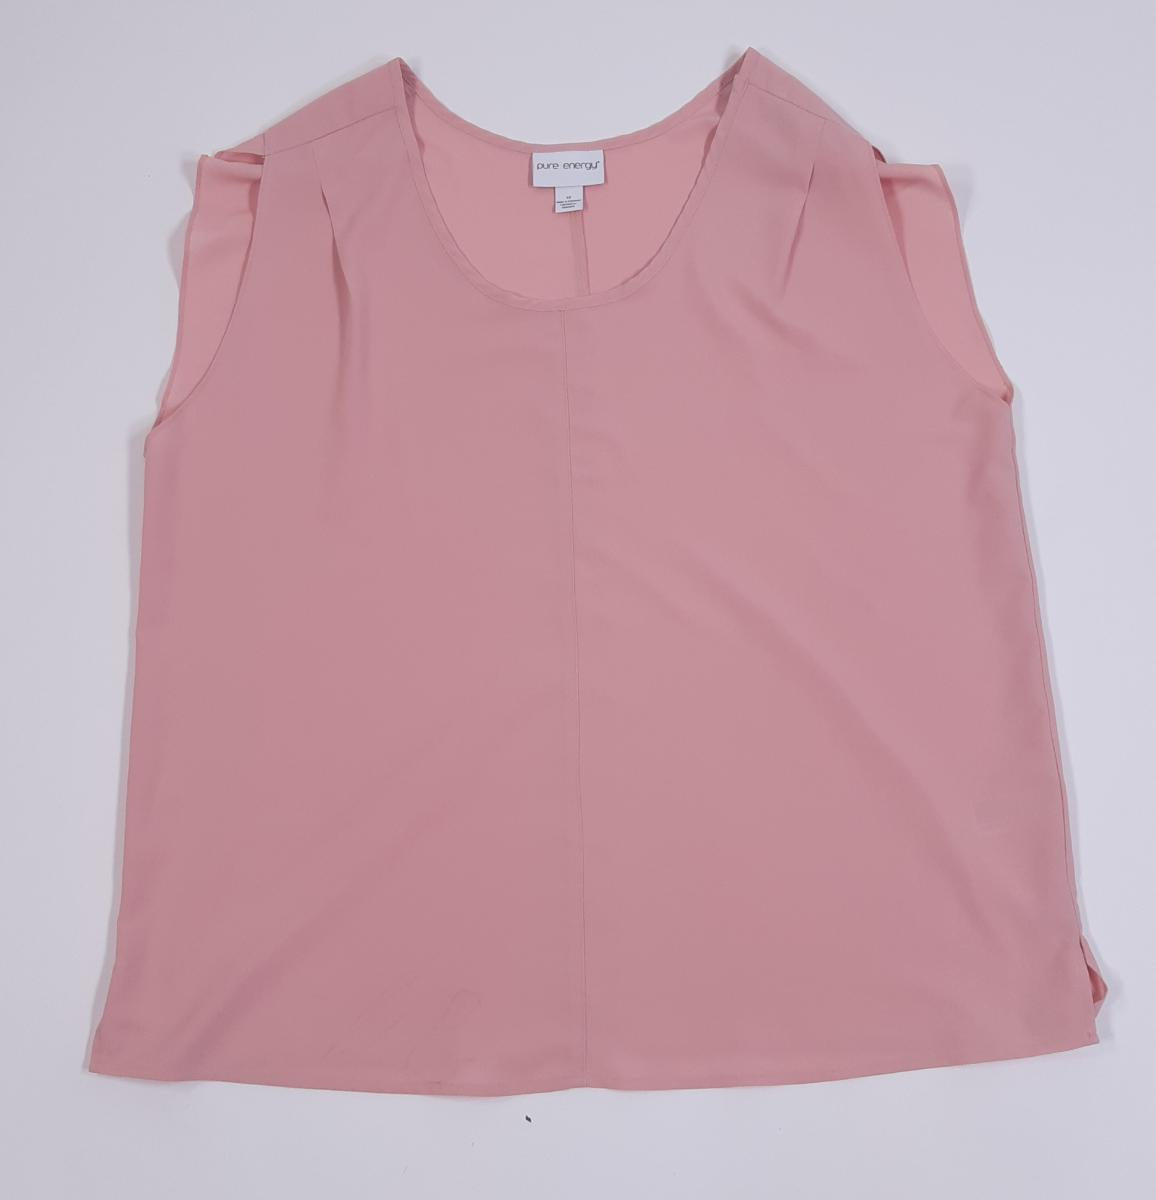 Pure Energy Pink Top